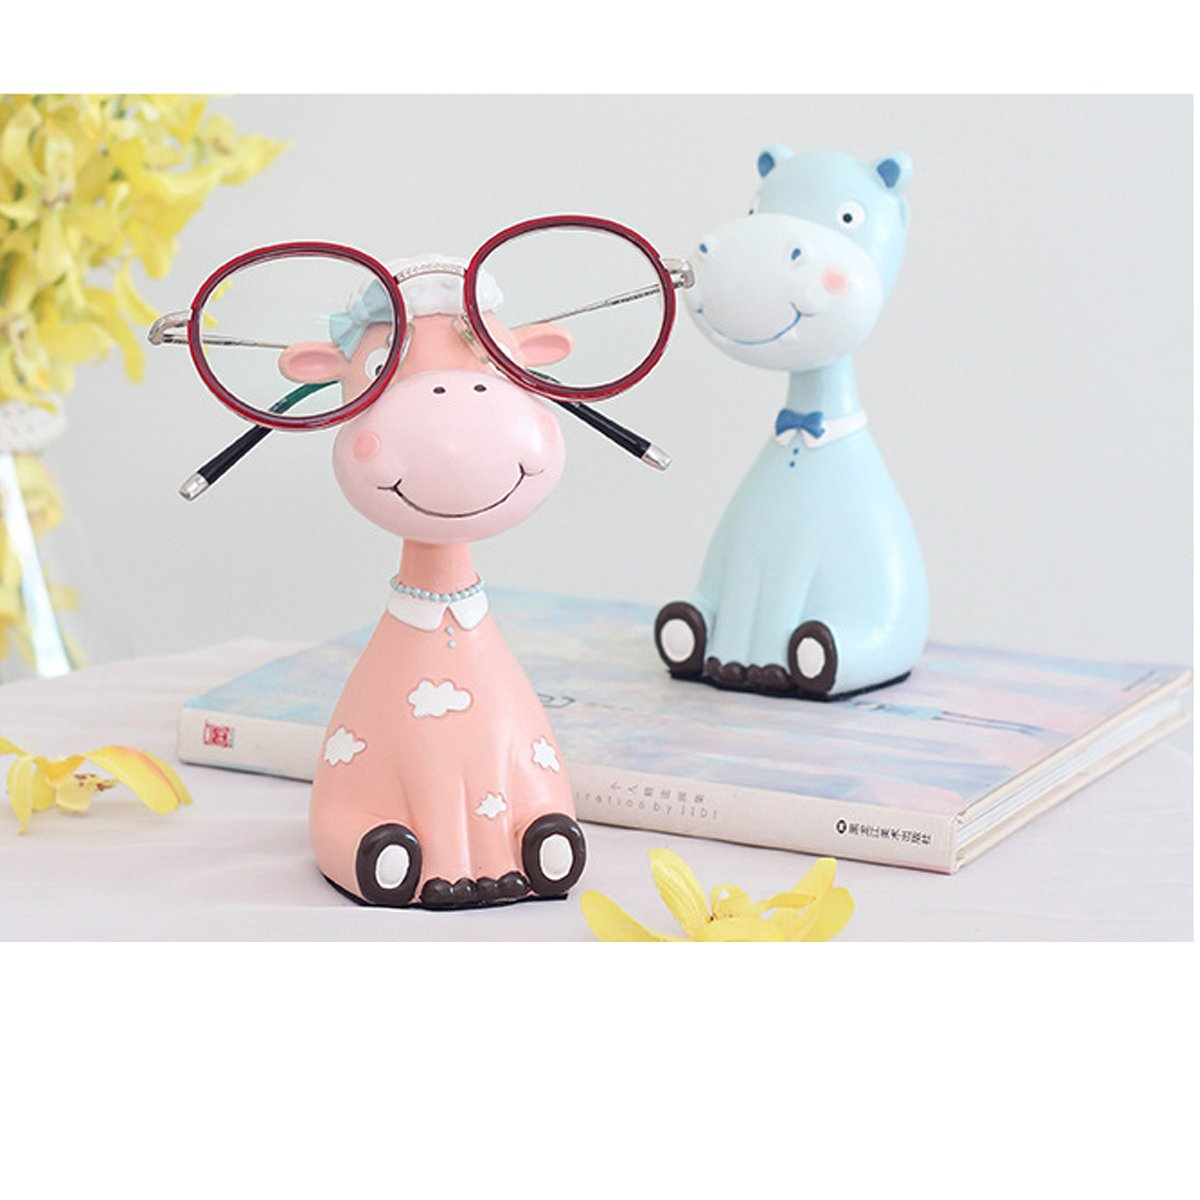 Gift for Christmas or Birthday to Your Loved Ones Adorable Animals Zoo Eyeglass Spectacle in 2 pcs/Eyewear Holder by NaNa (Image #3)